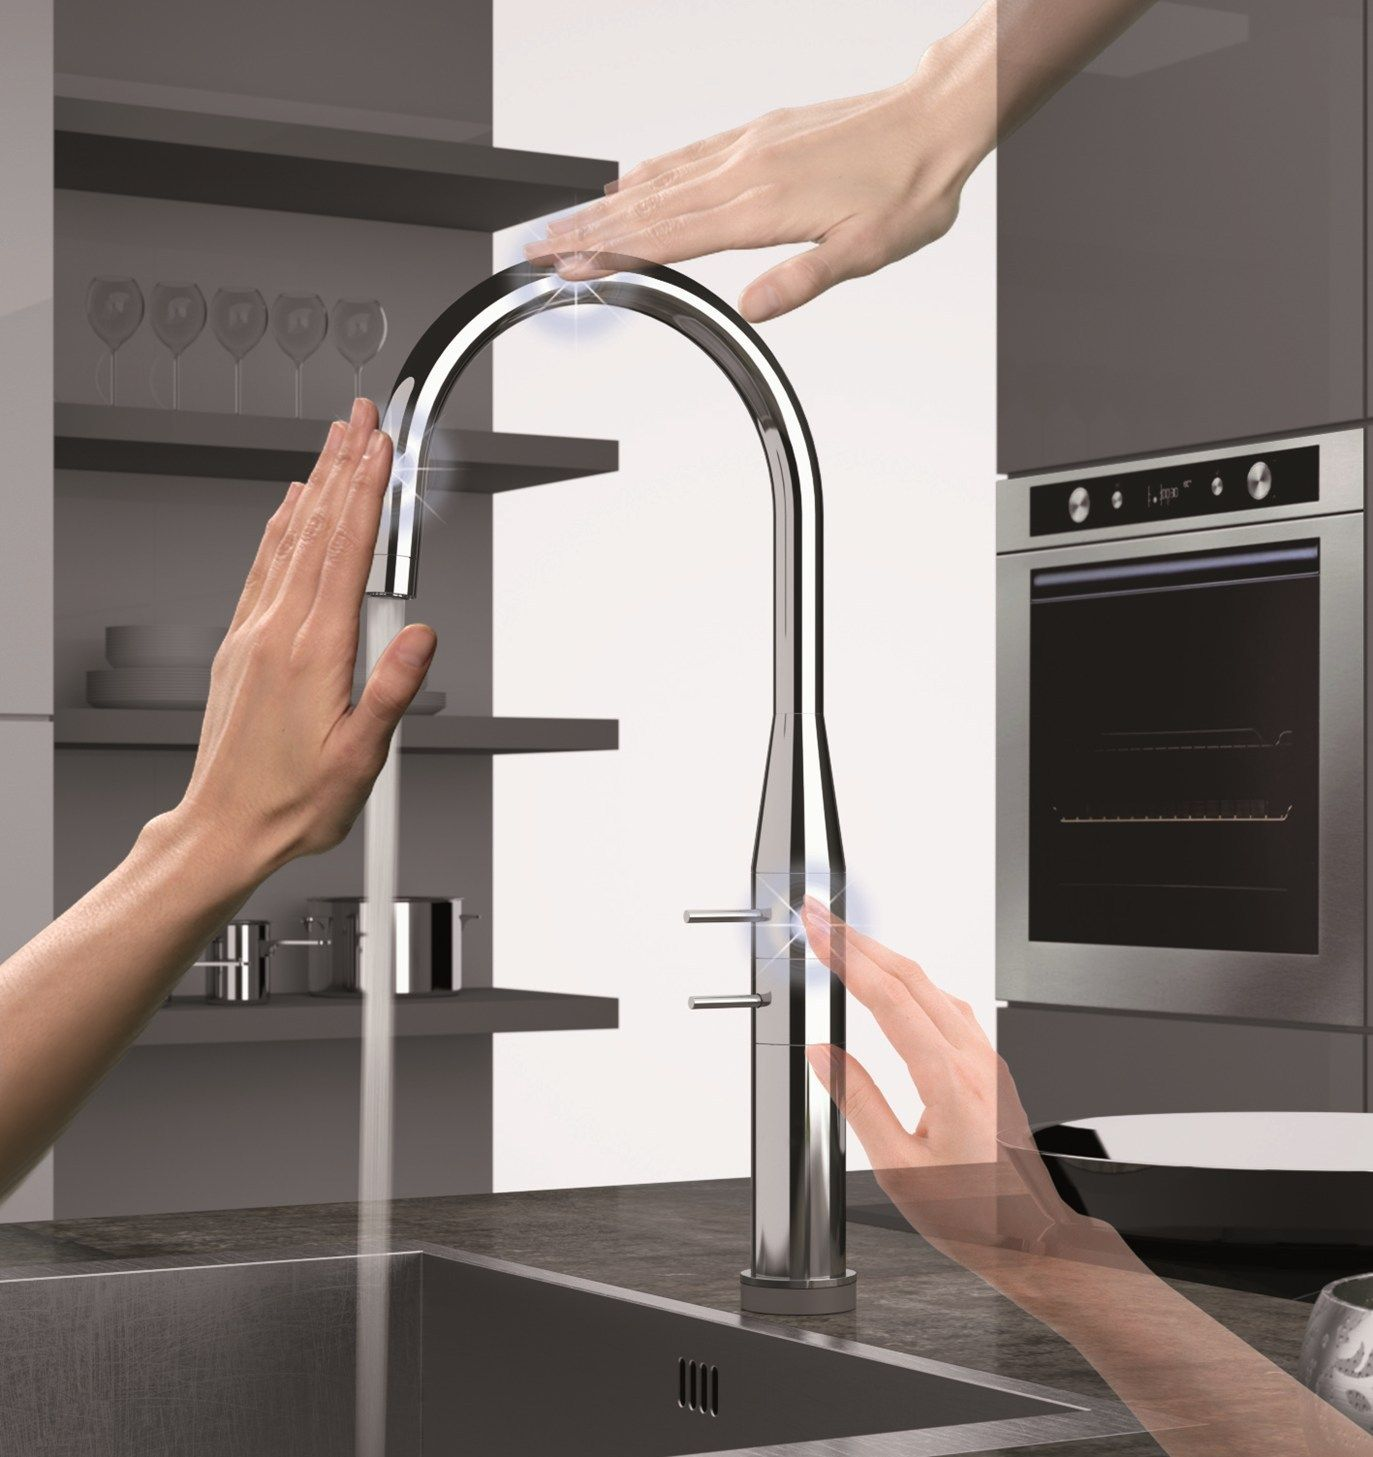 Remer Rubinetterie at Cersaie New faucet solutions with integrated ...